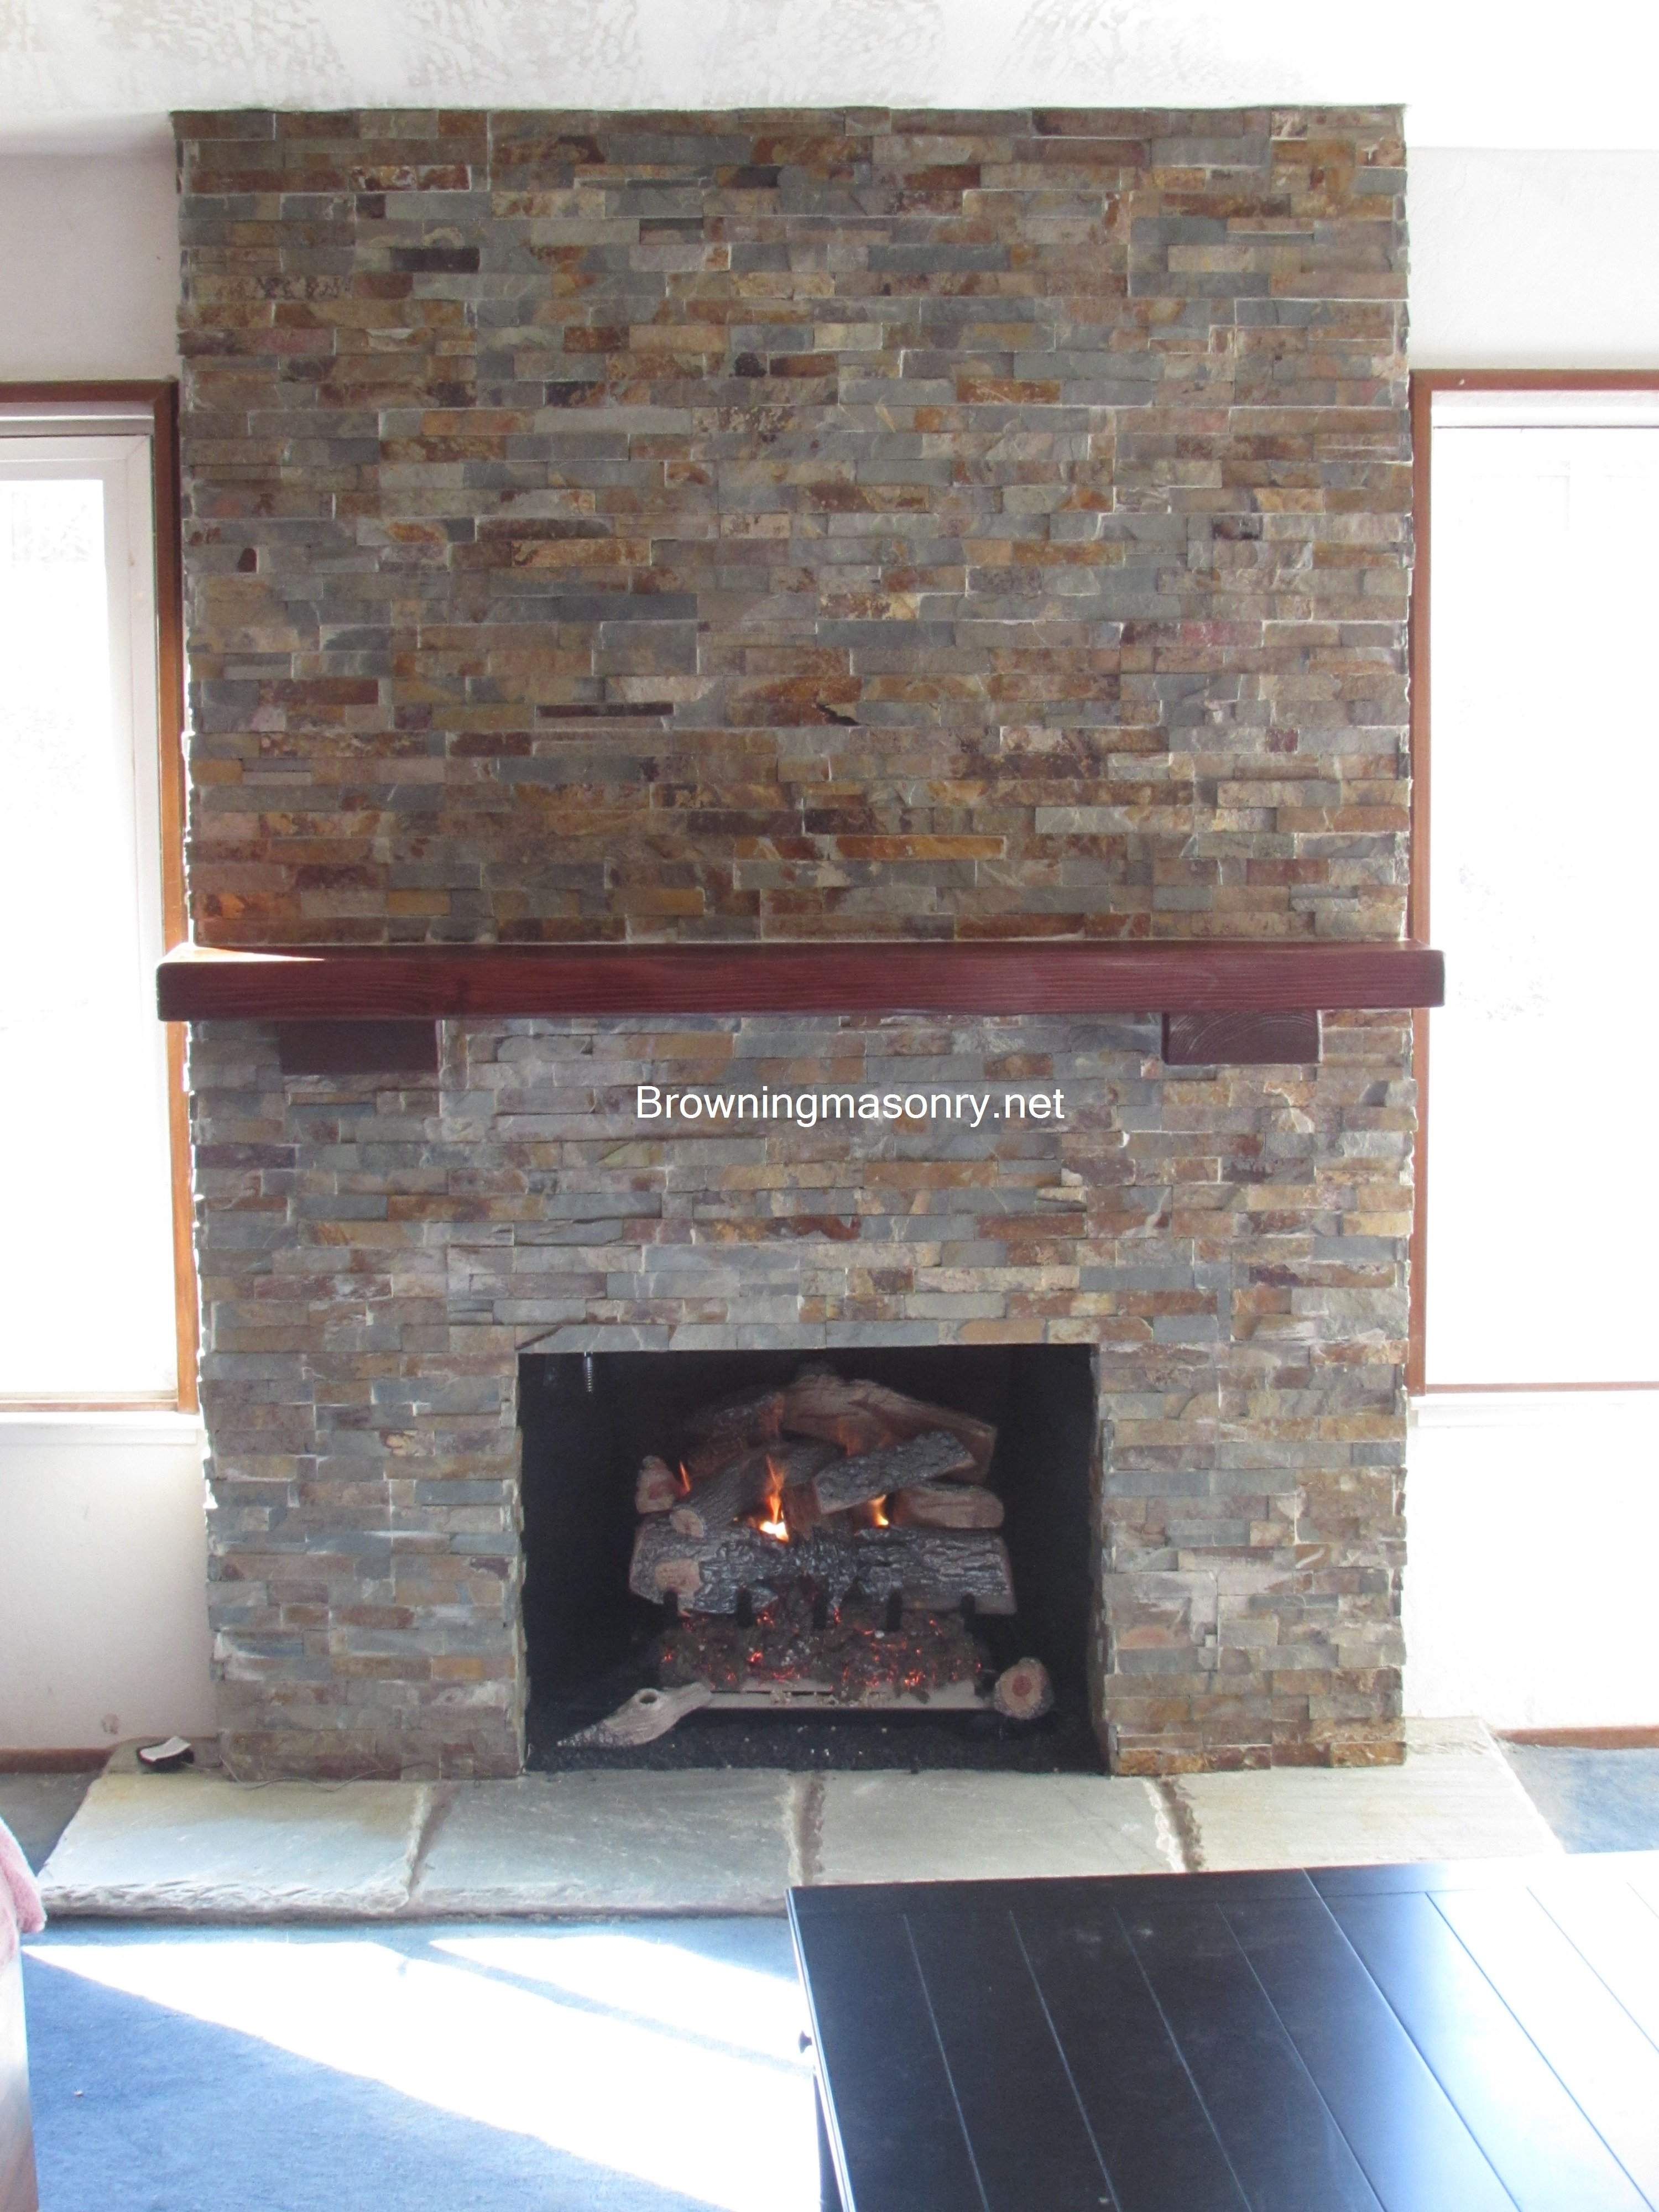 major makeovers transitional between of renovation before few fireplace remodel fp back in for brick was we second and years generation wiese ma removed idea wall that company sherborn completed the part kitchen a